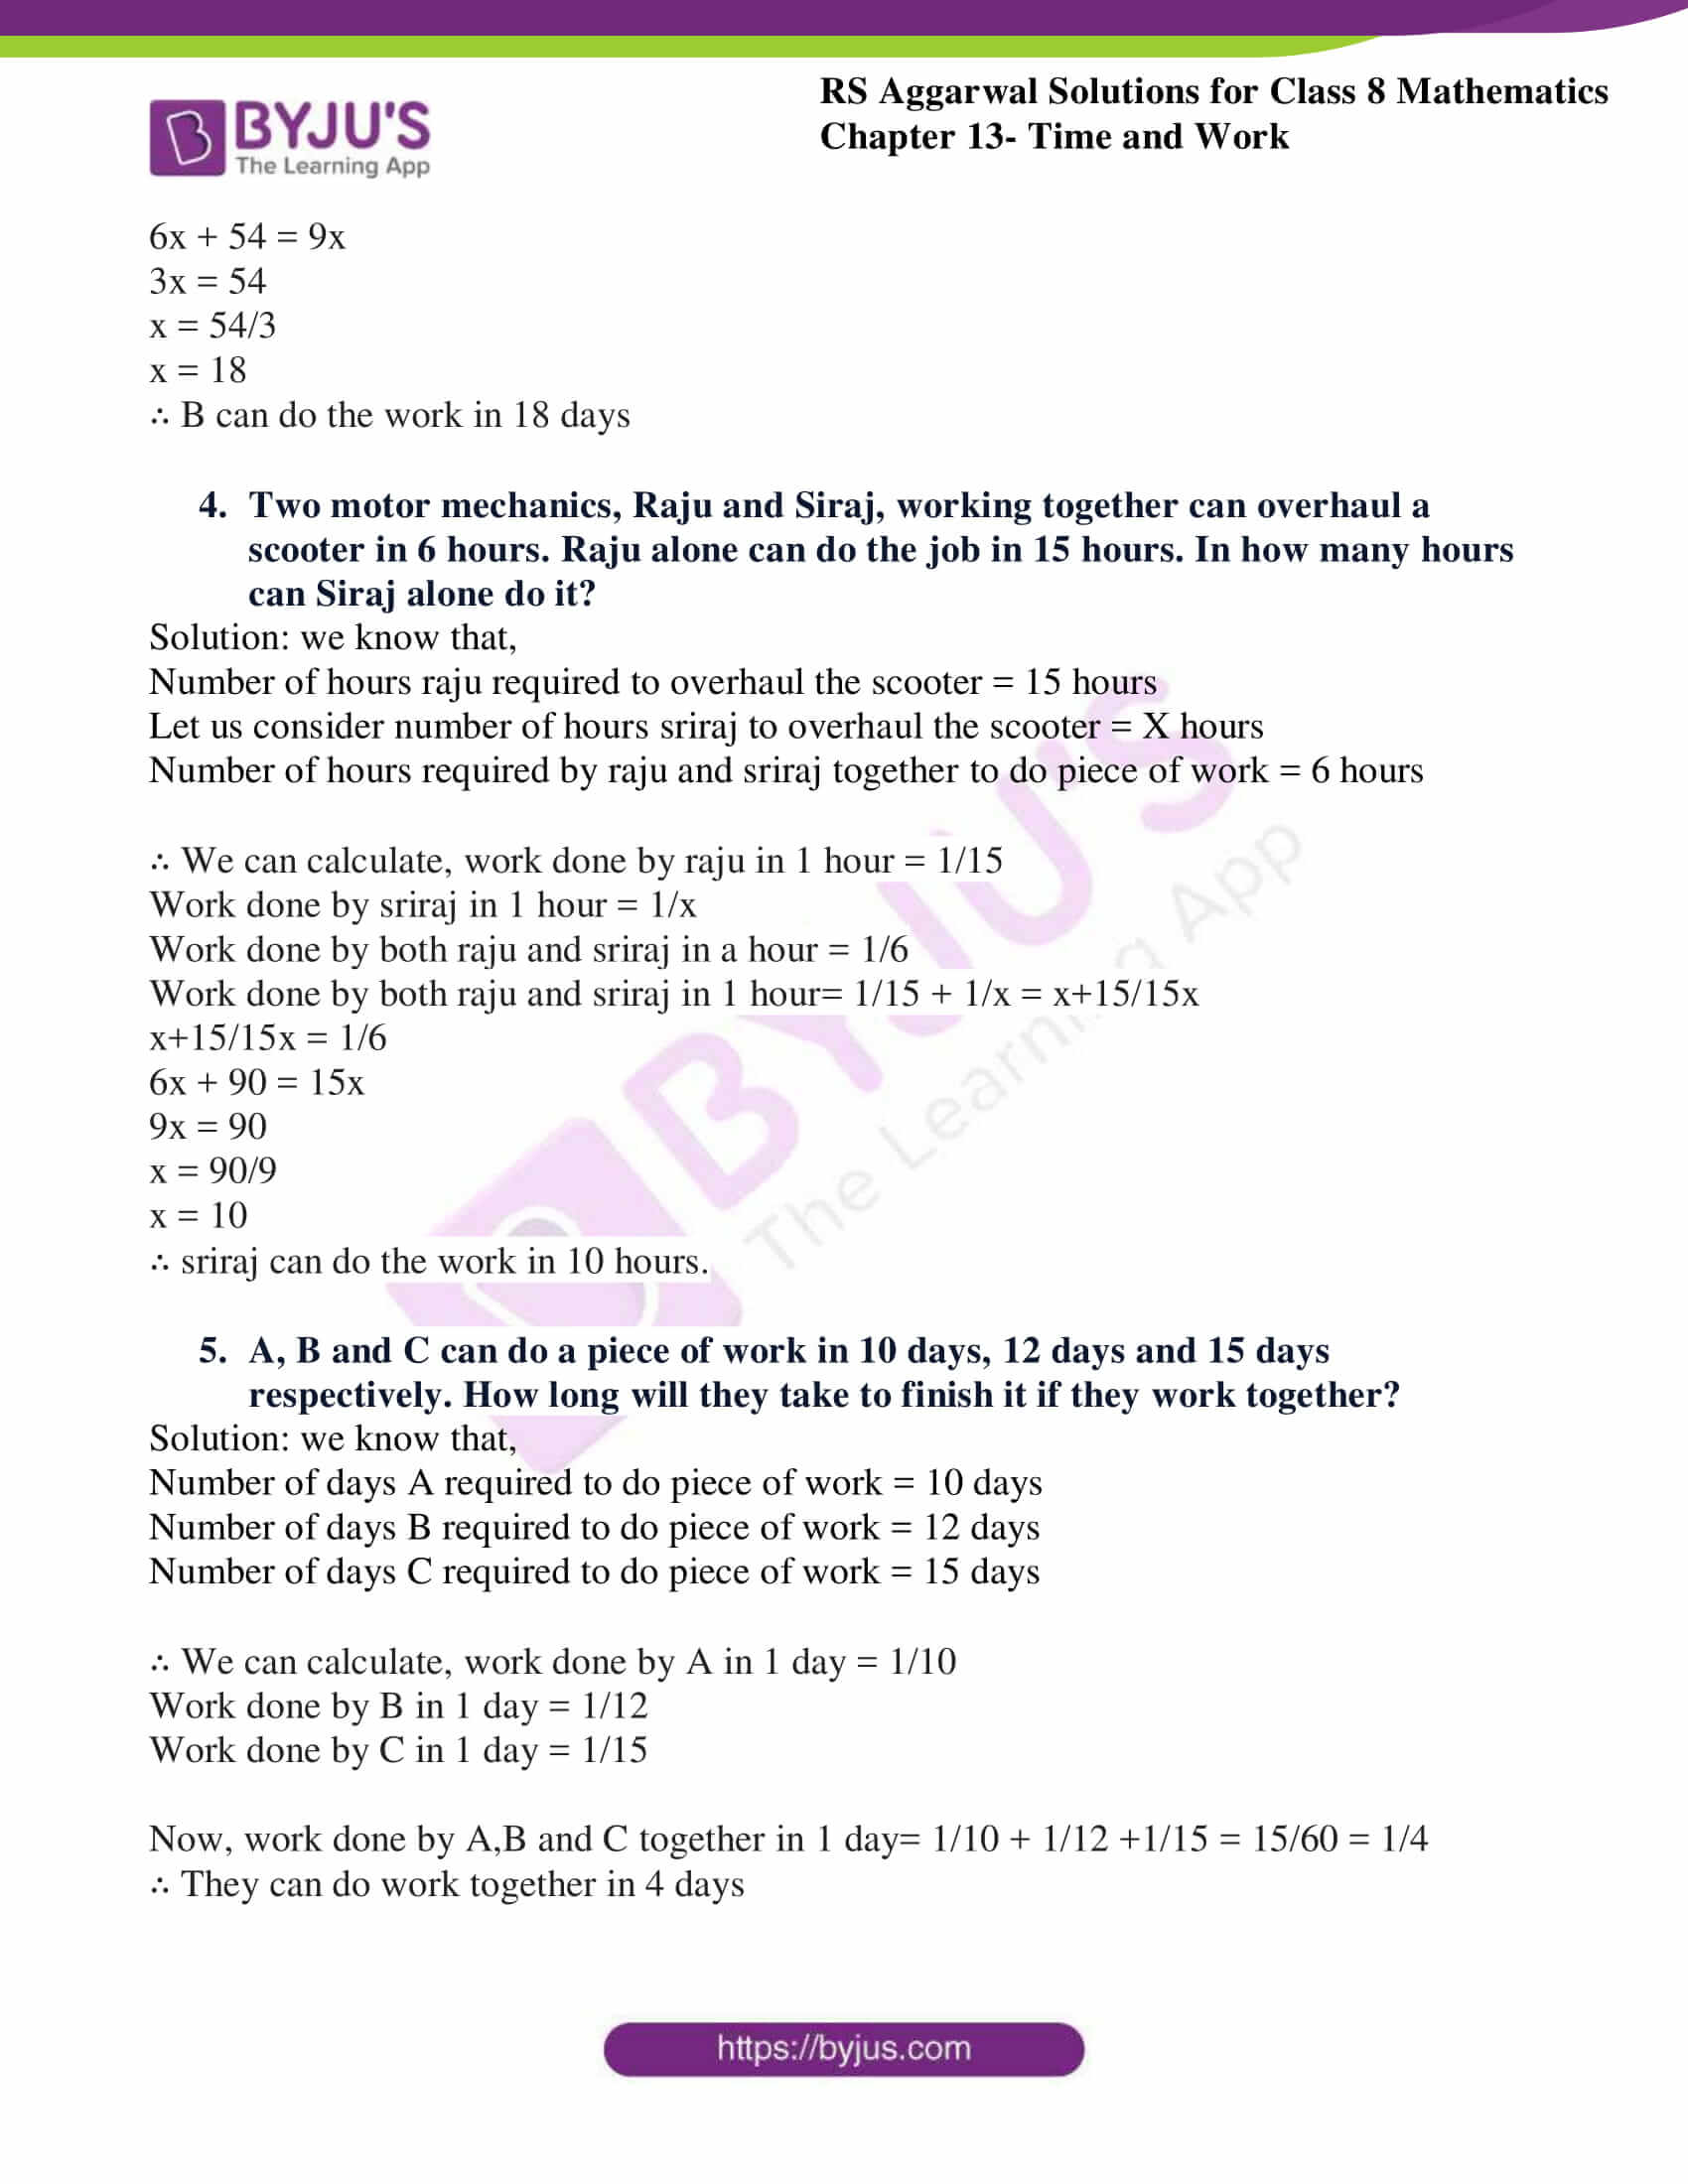 rs aggarwal solutions class 8 maths chapter 13a